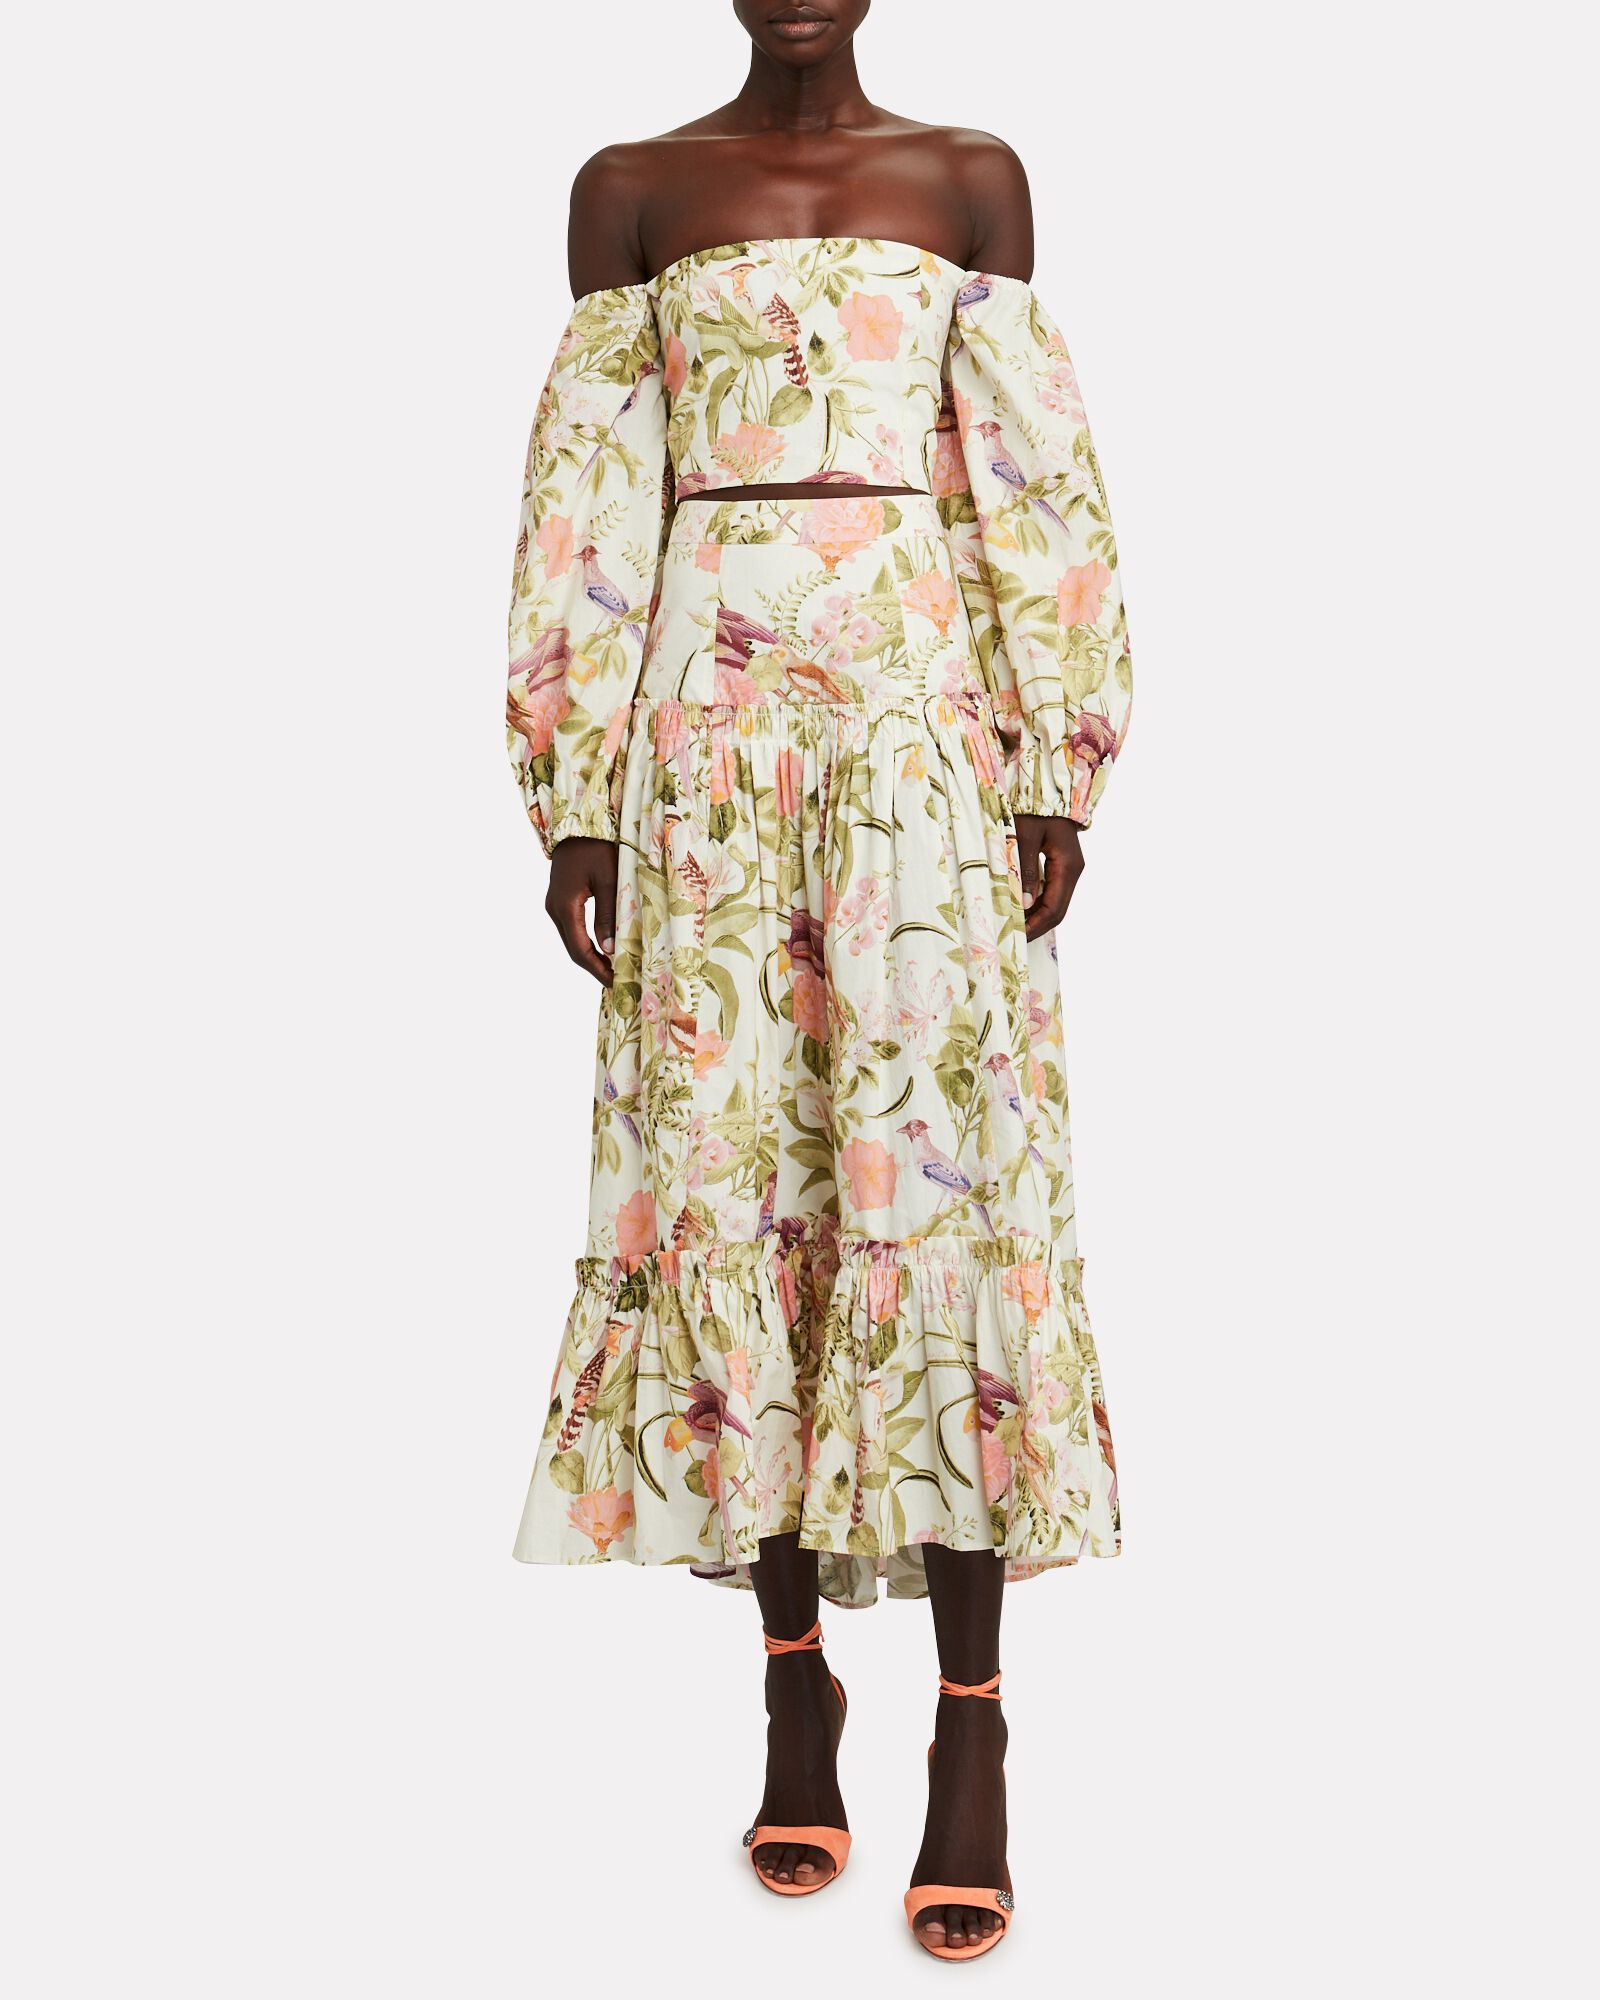 Tisbury Floral Midi Skirt, IVORY/LIGHT GREEN, hi-res